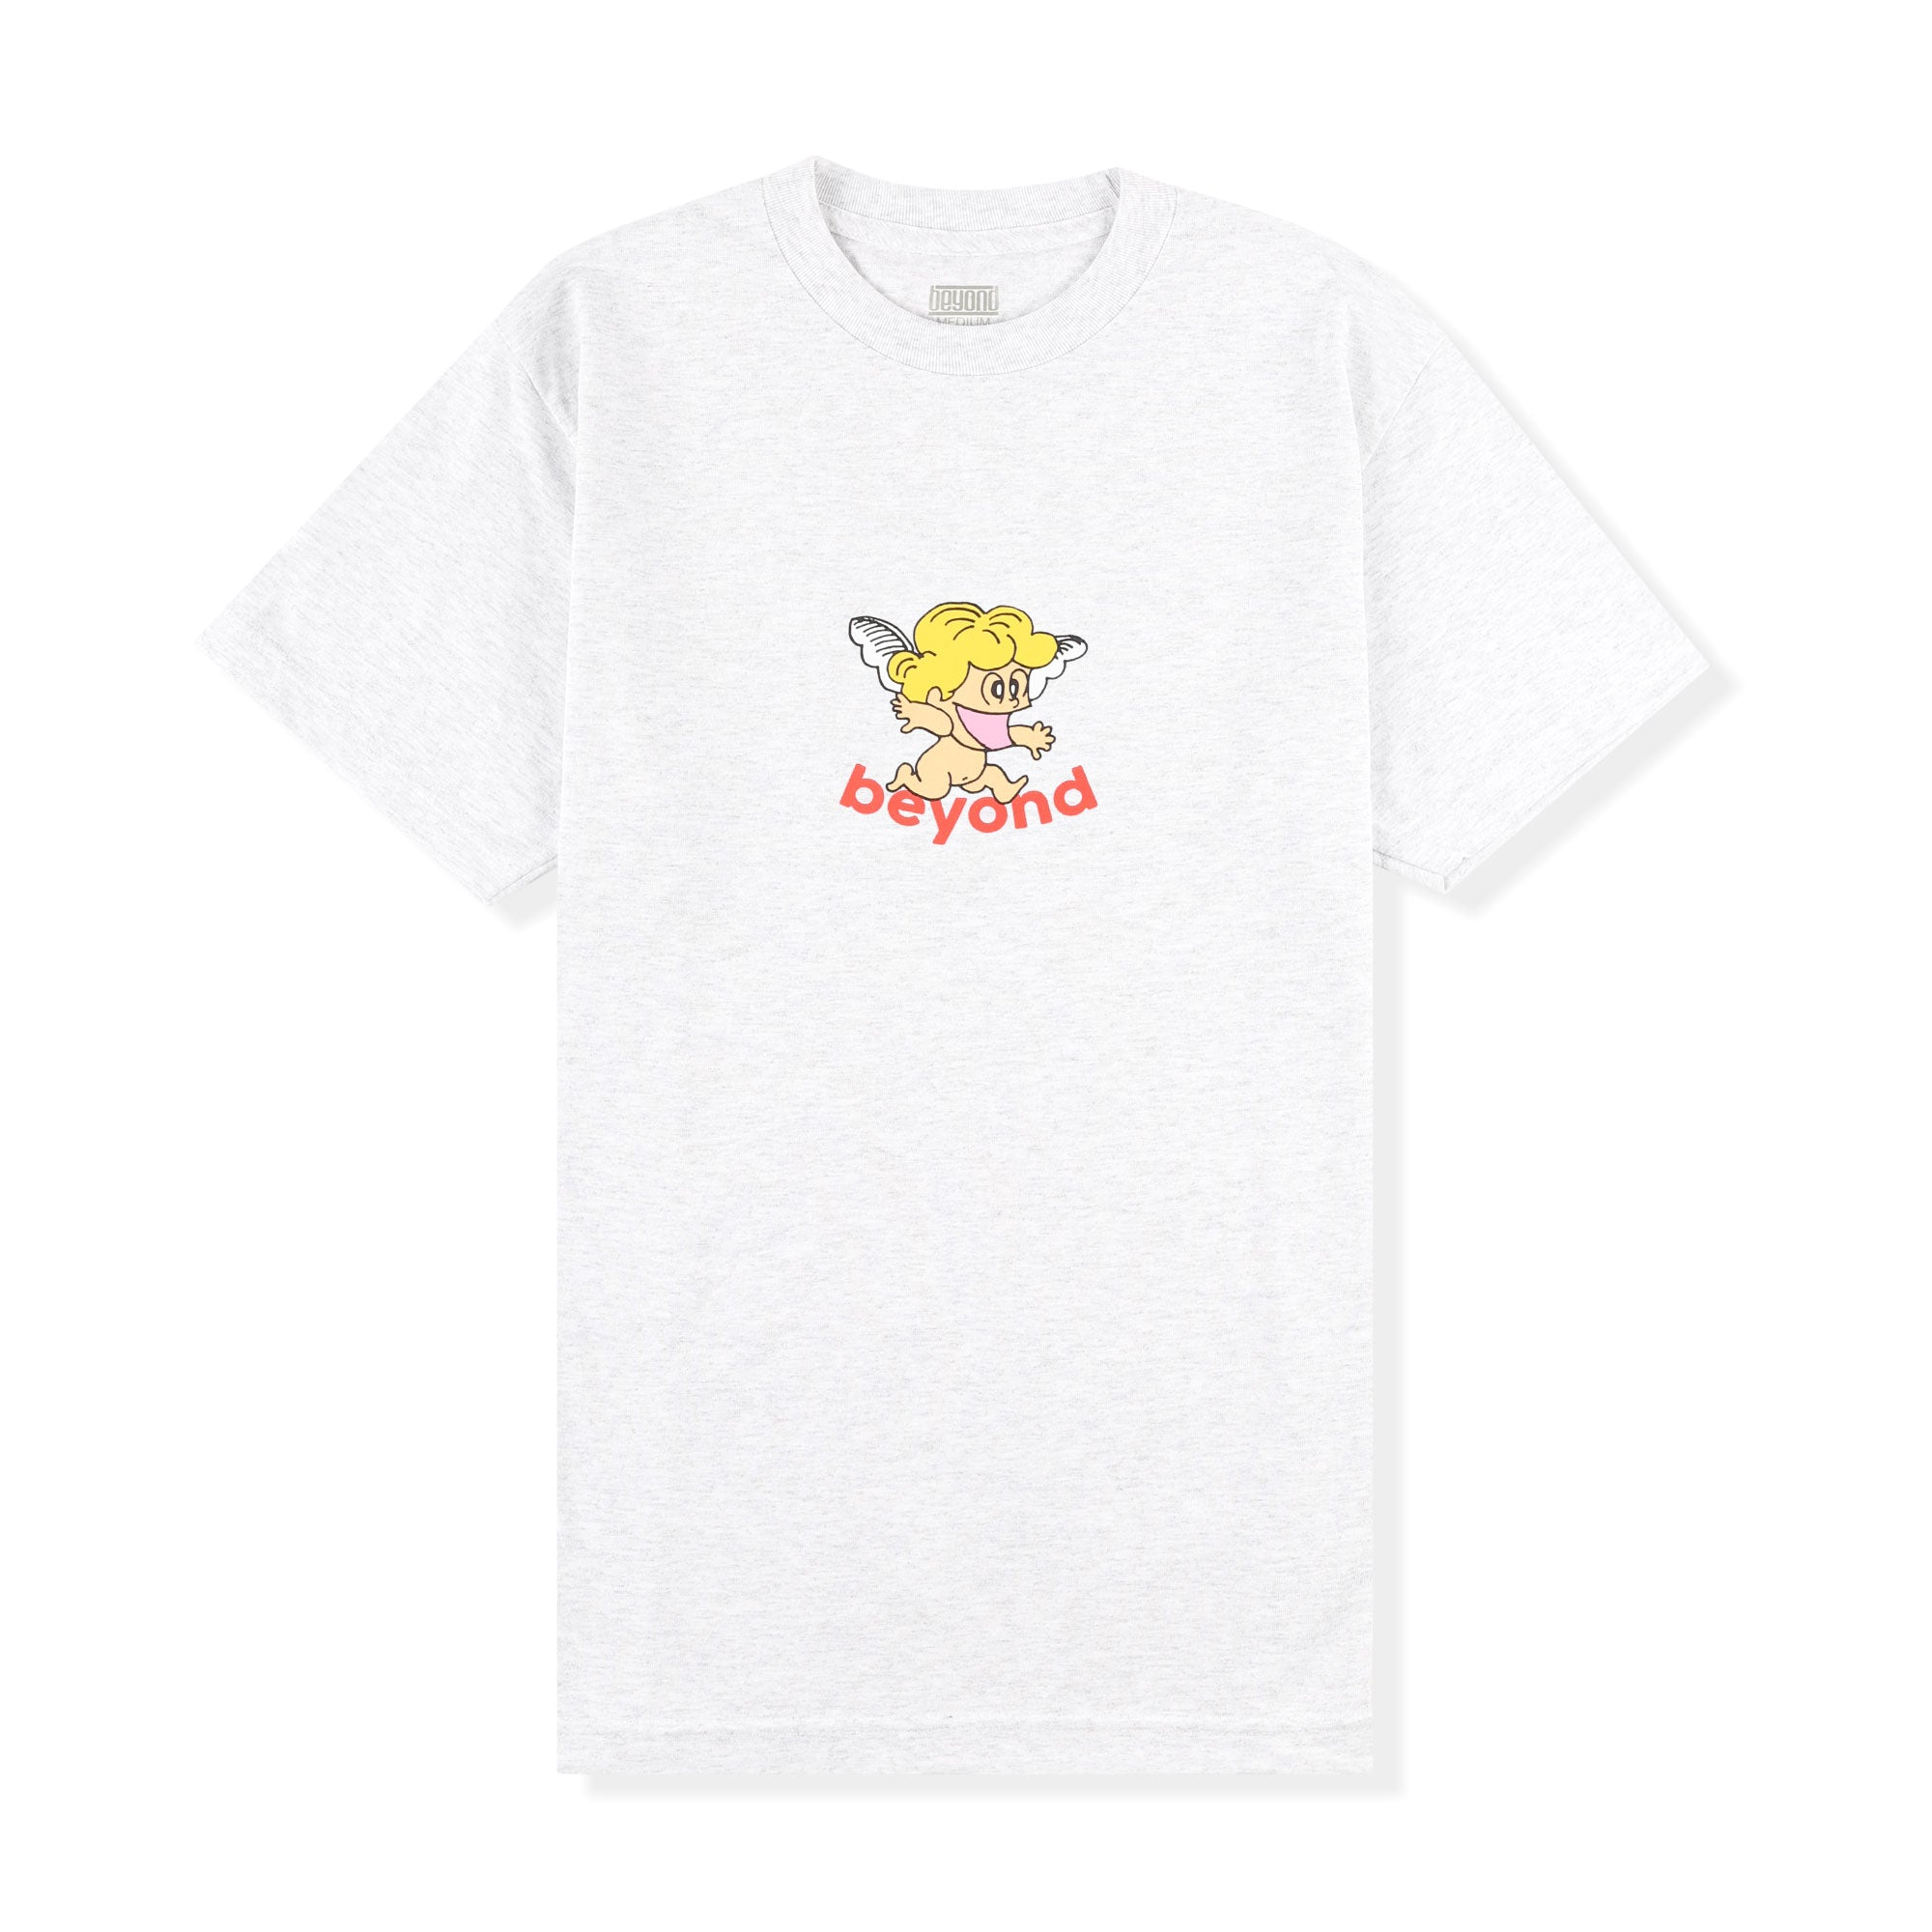 Beyond Angel Baby Tee Product Photo #1